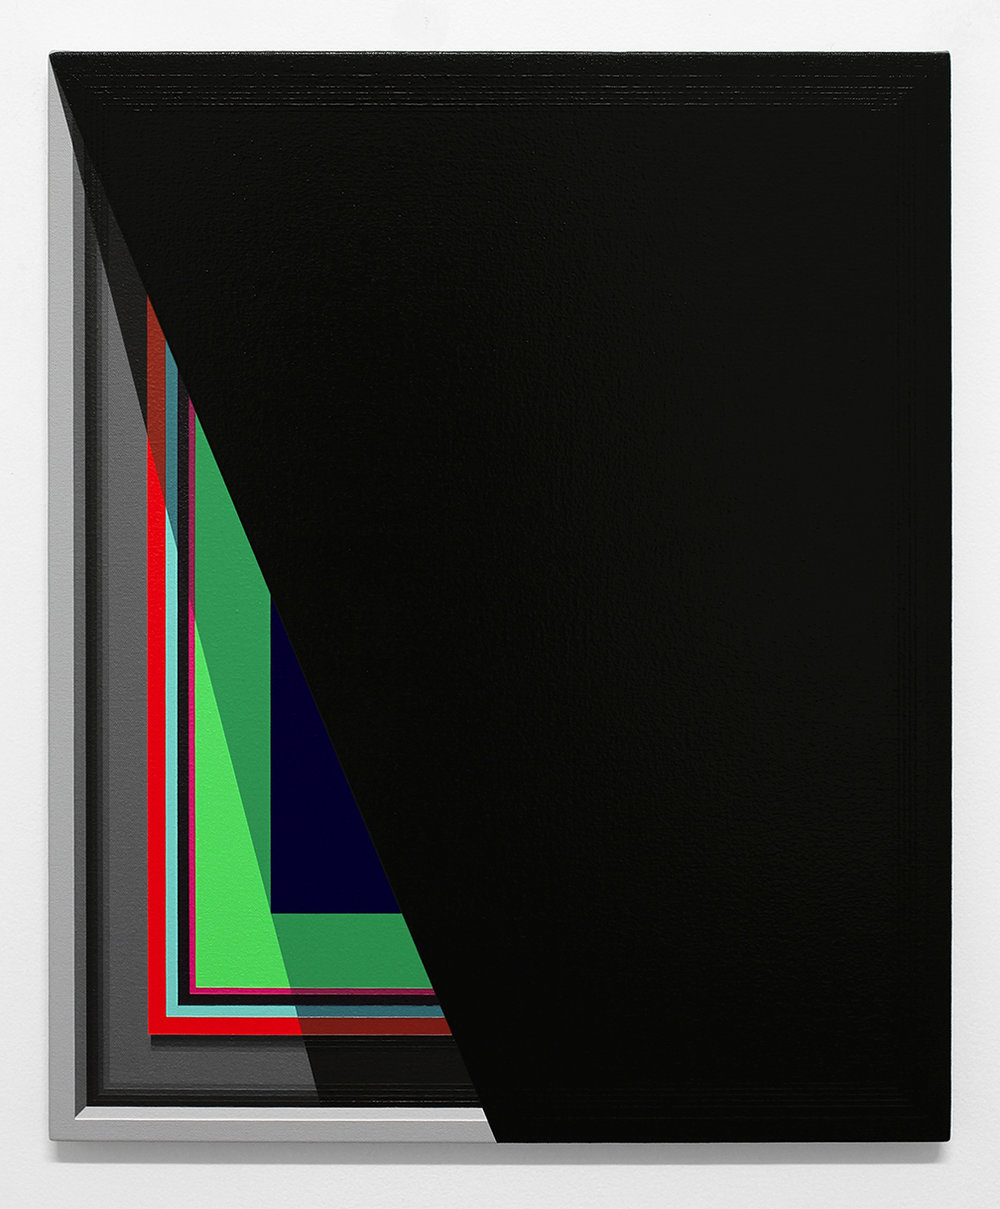 Severed Hue (Black)   2013  Acrylic on canvas  22 x 18 inches  (55.88 x 45.72 cm)